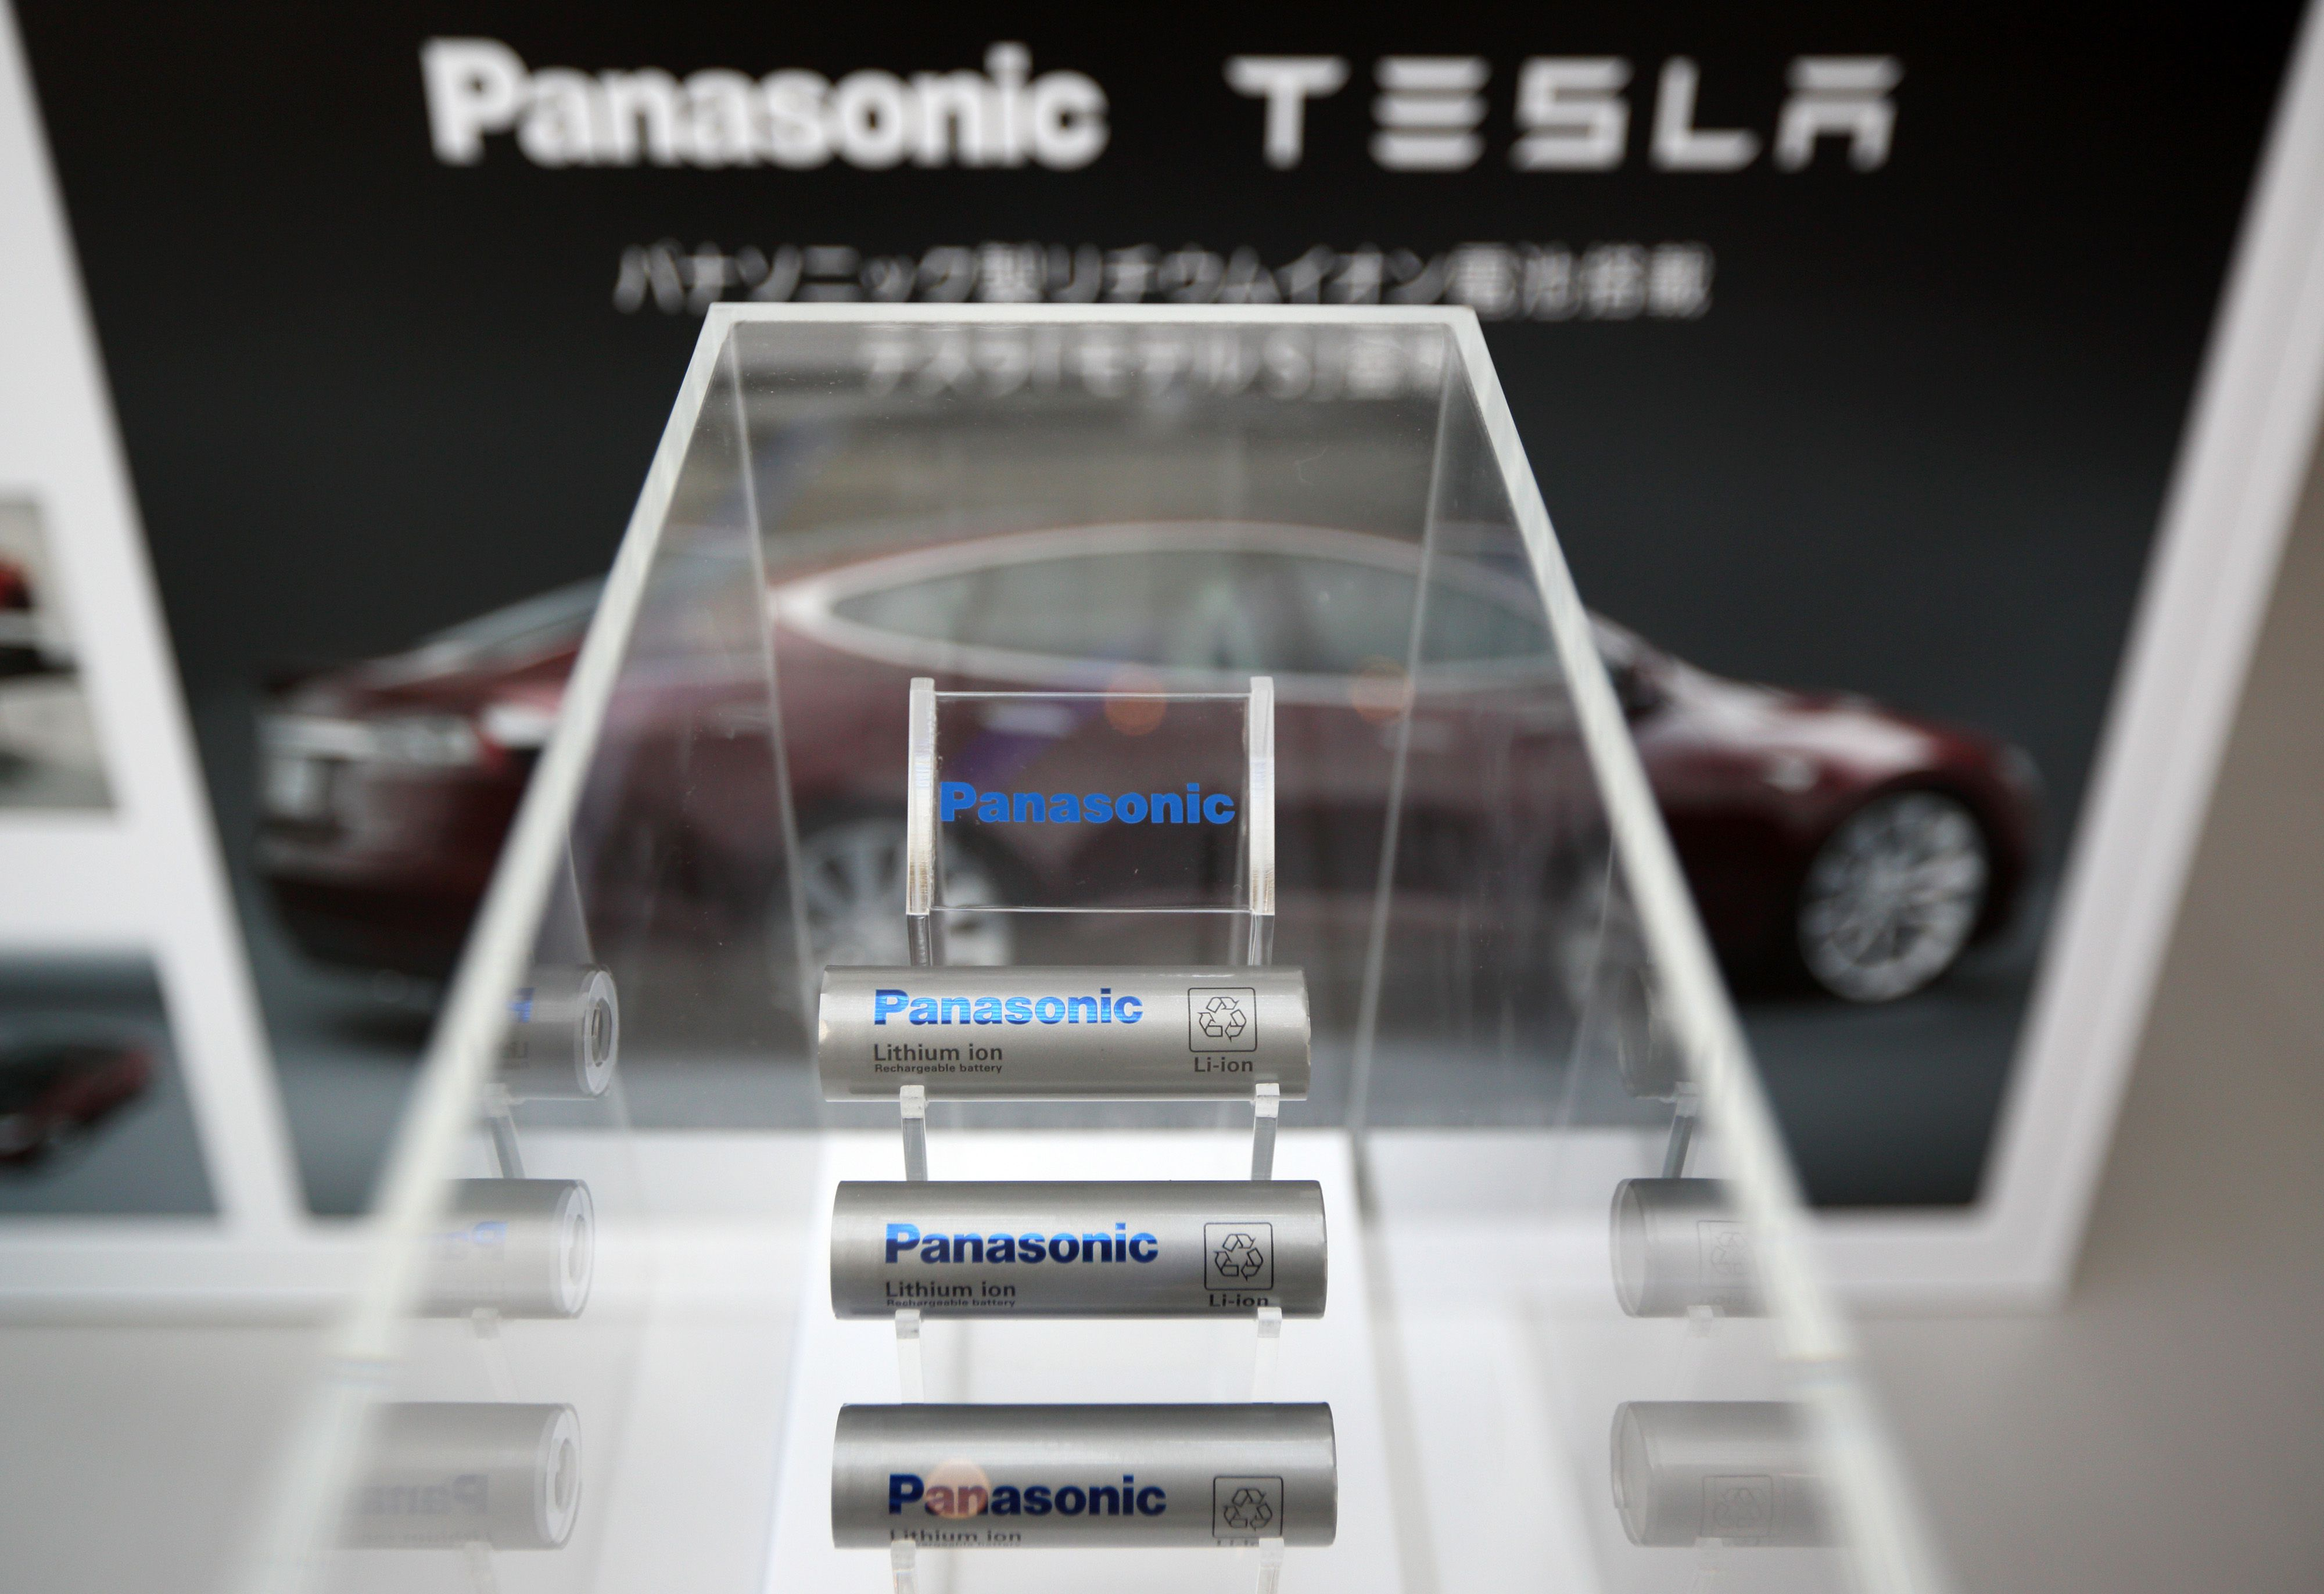 Panasonic tesla partnership